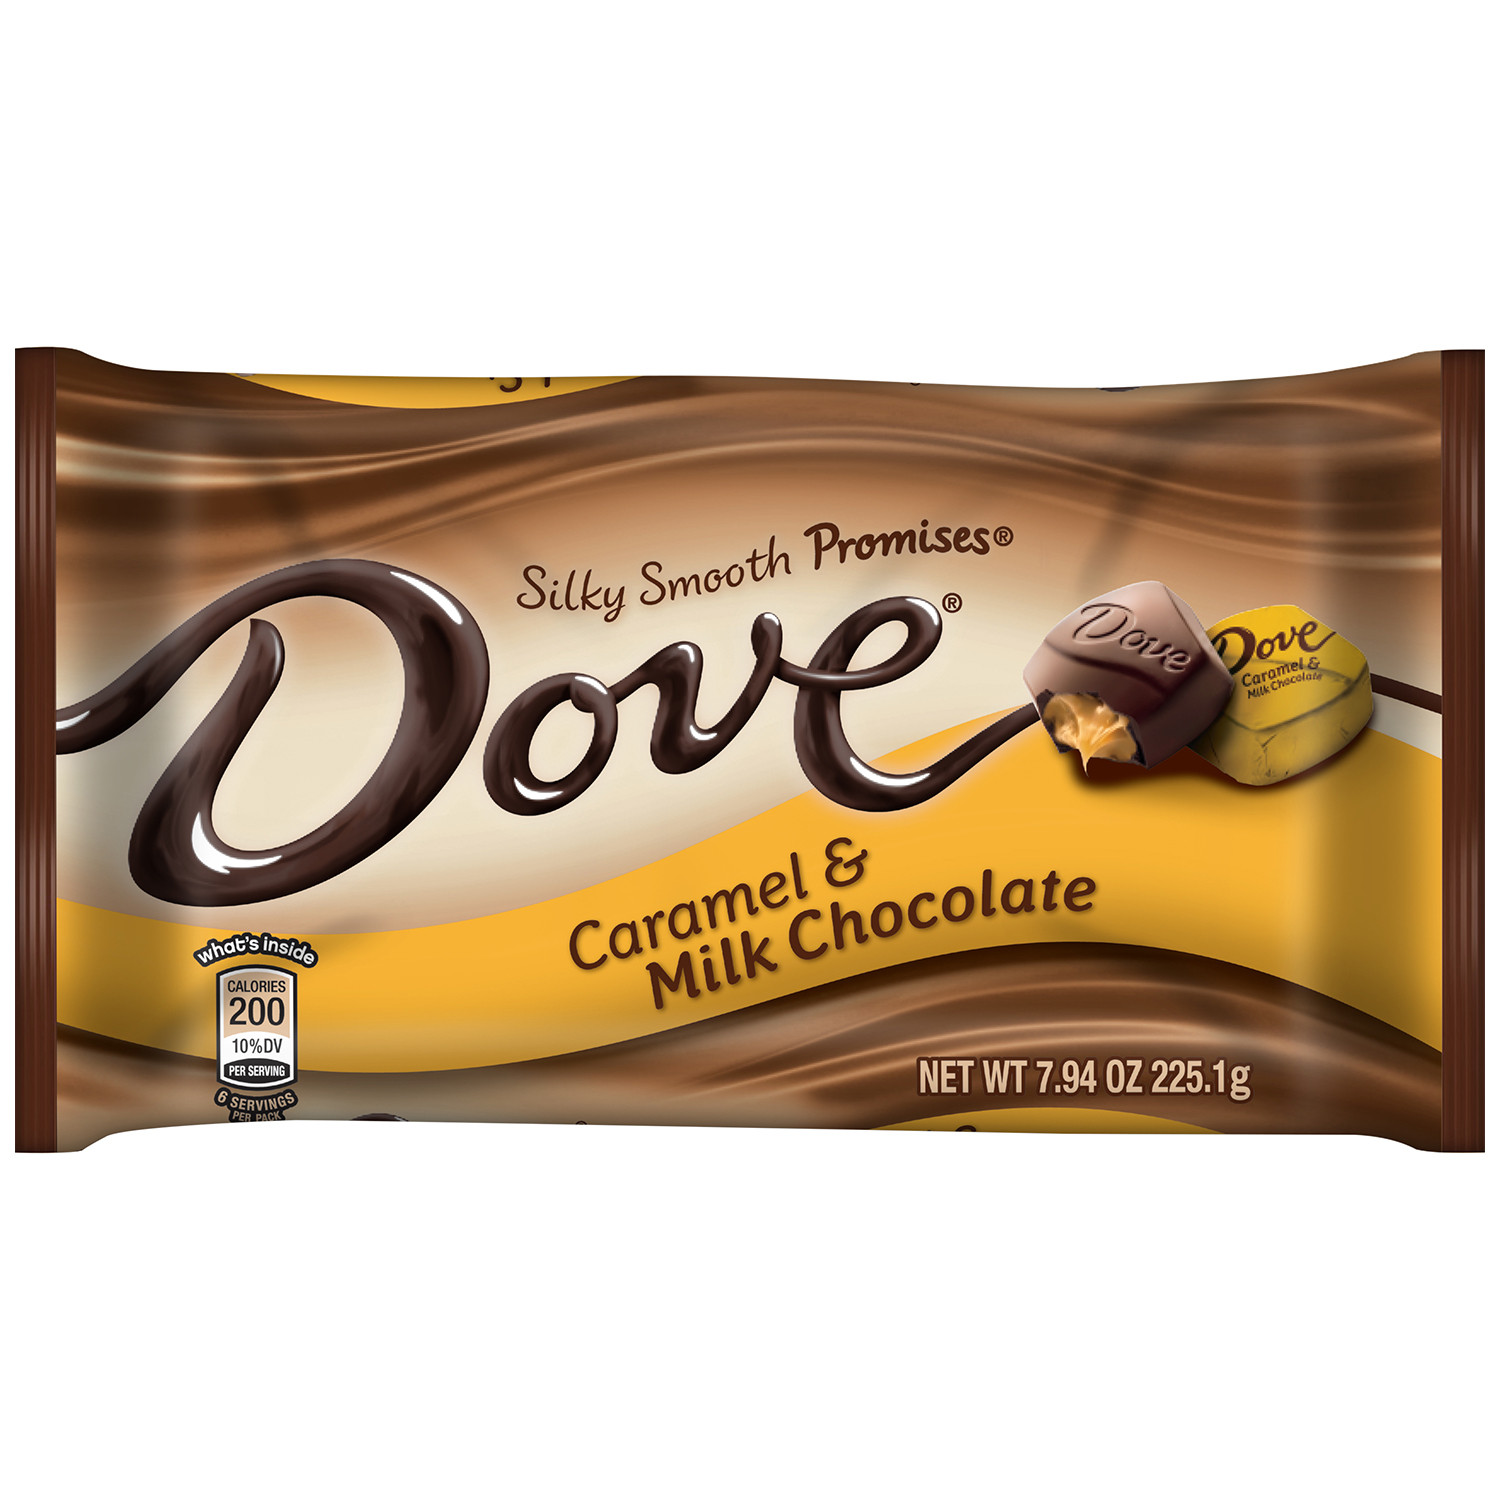 DOVE PROMISES Caramel and Milk Chocolate Candy Bag, 7.94 oz by MARS, INC.